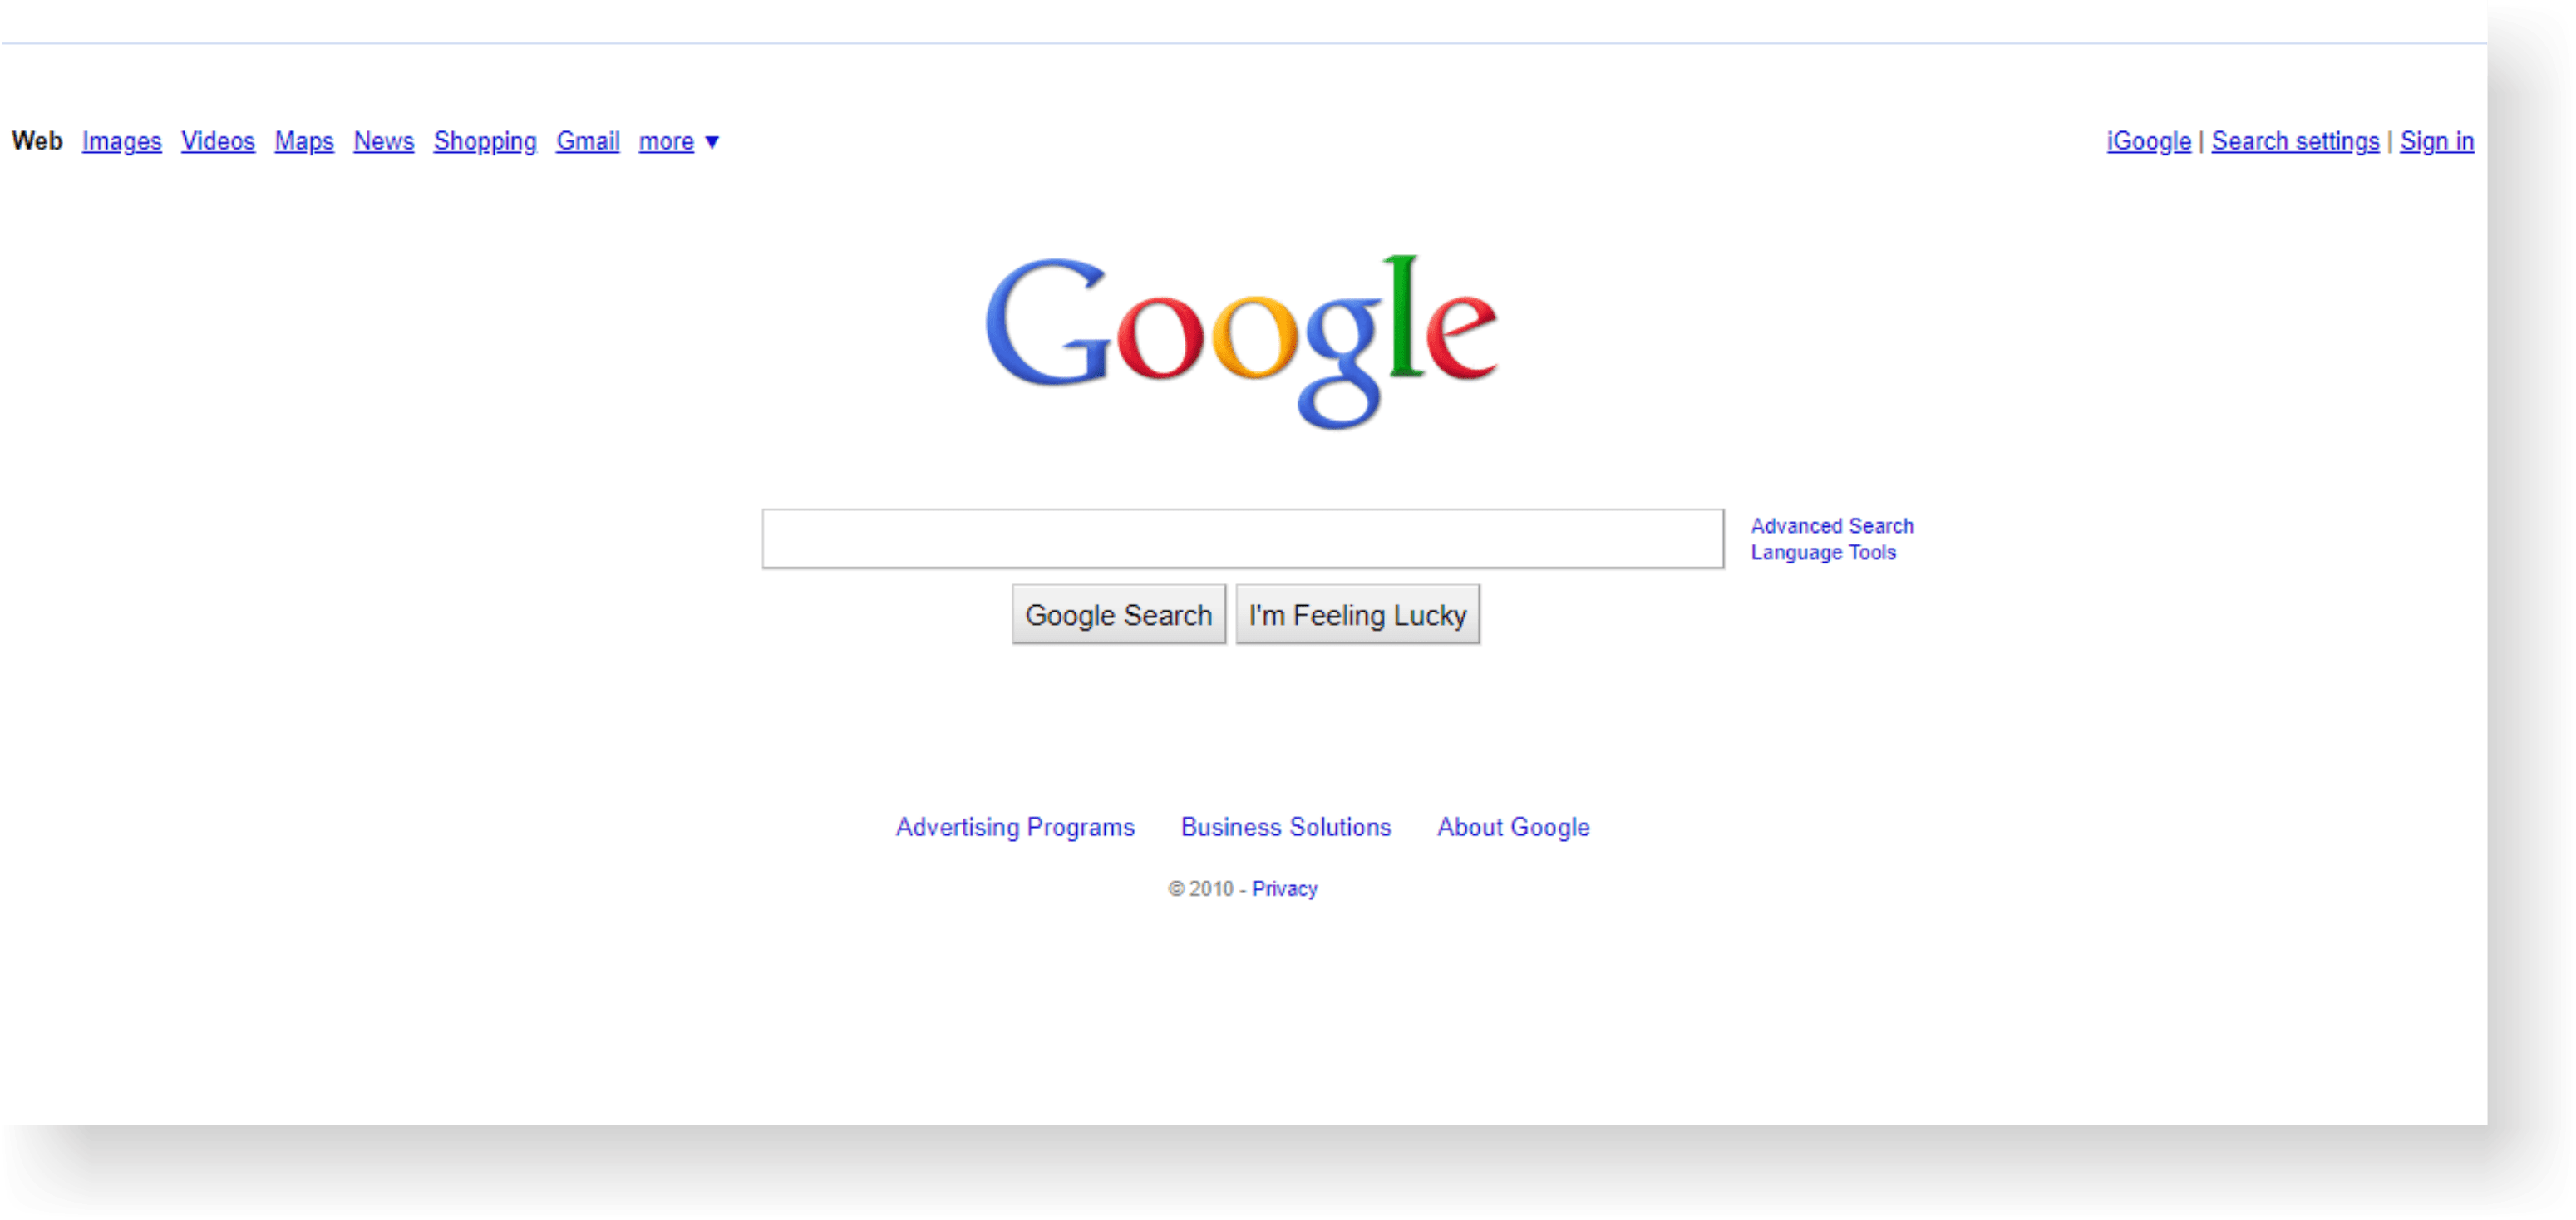 google site history from internet archive on 2010